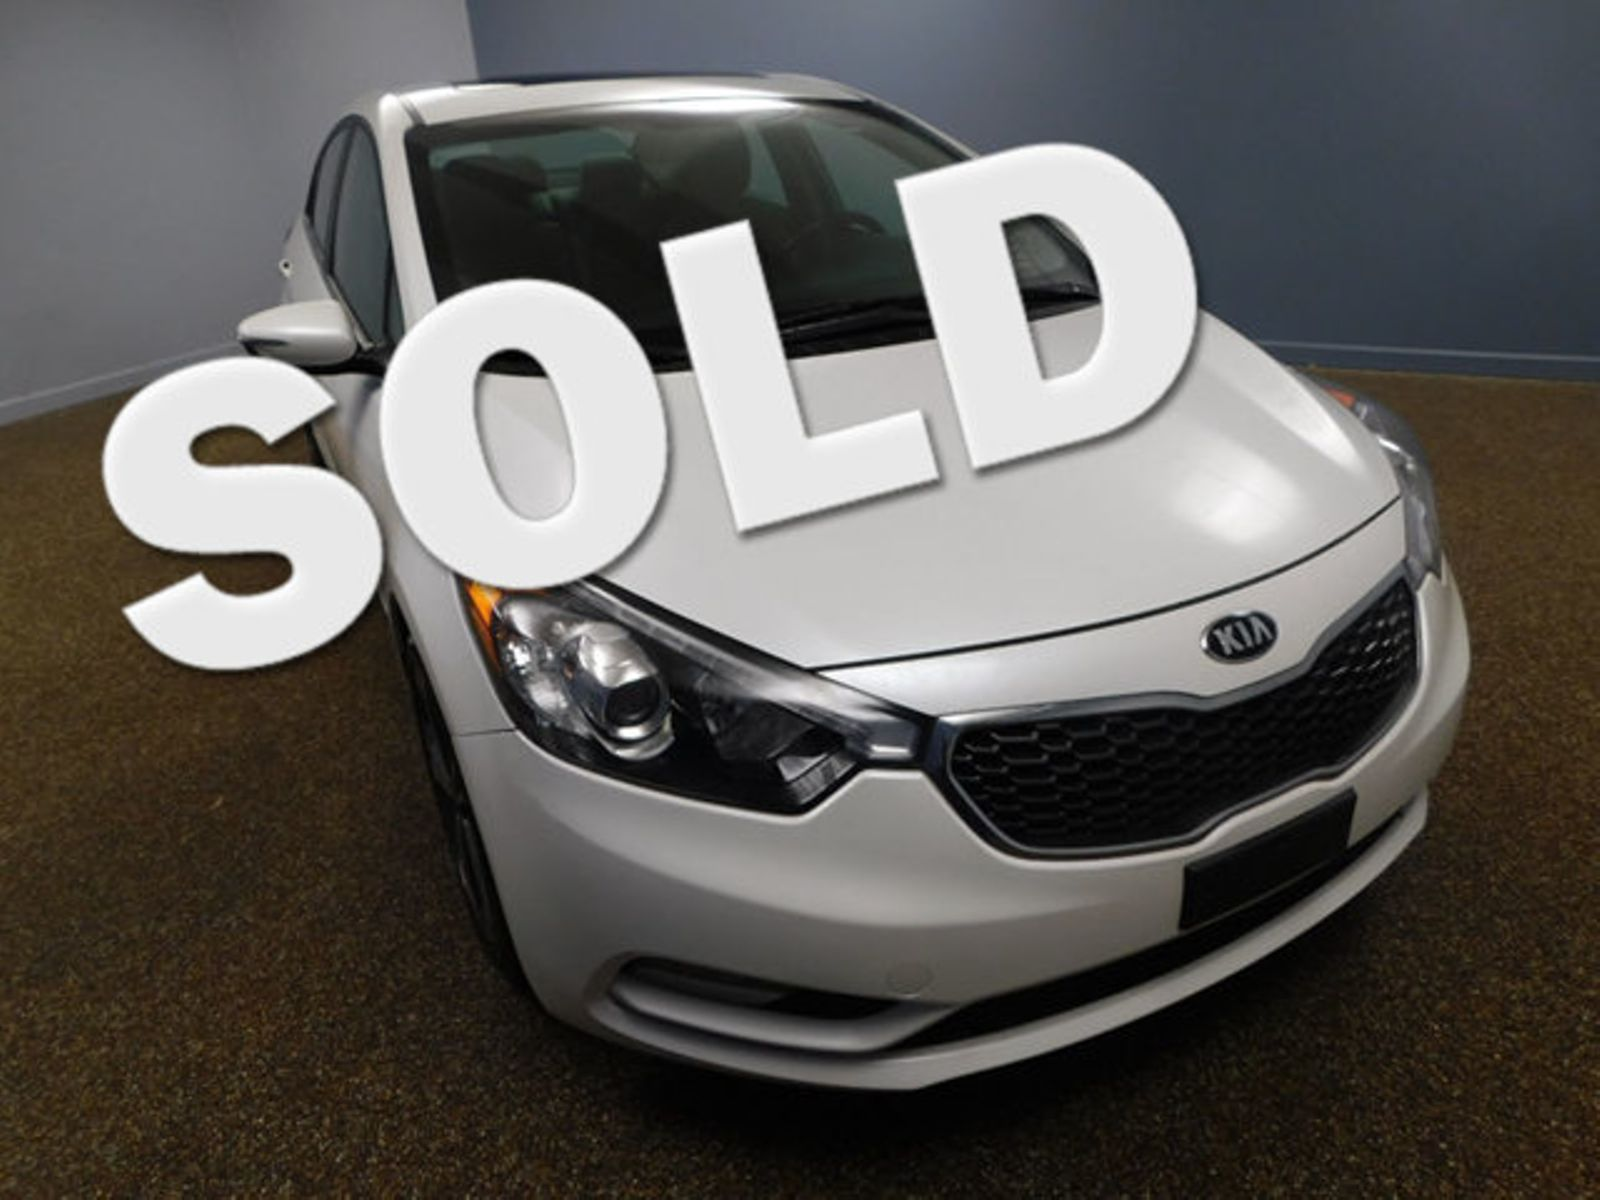 vehicles ma htm pre featured for sedan sale rio in bedford dartmouth lx kia owned of